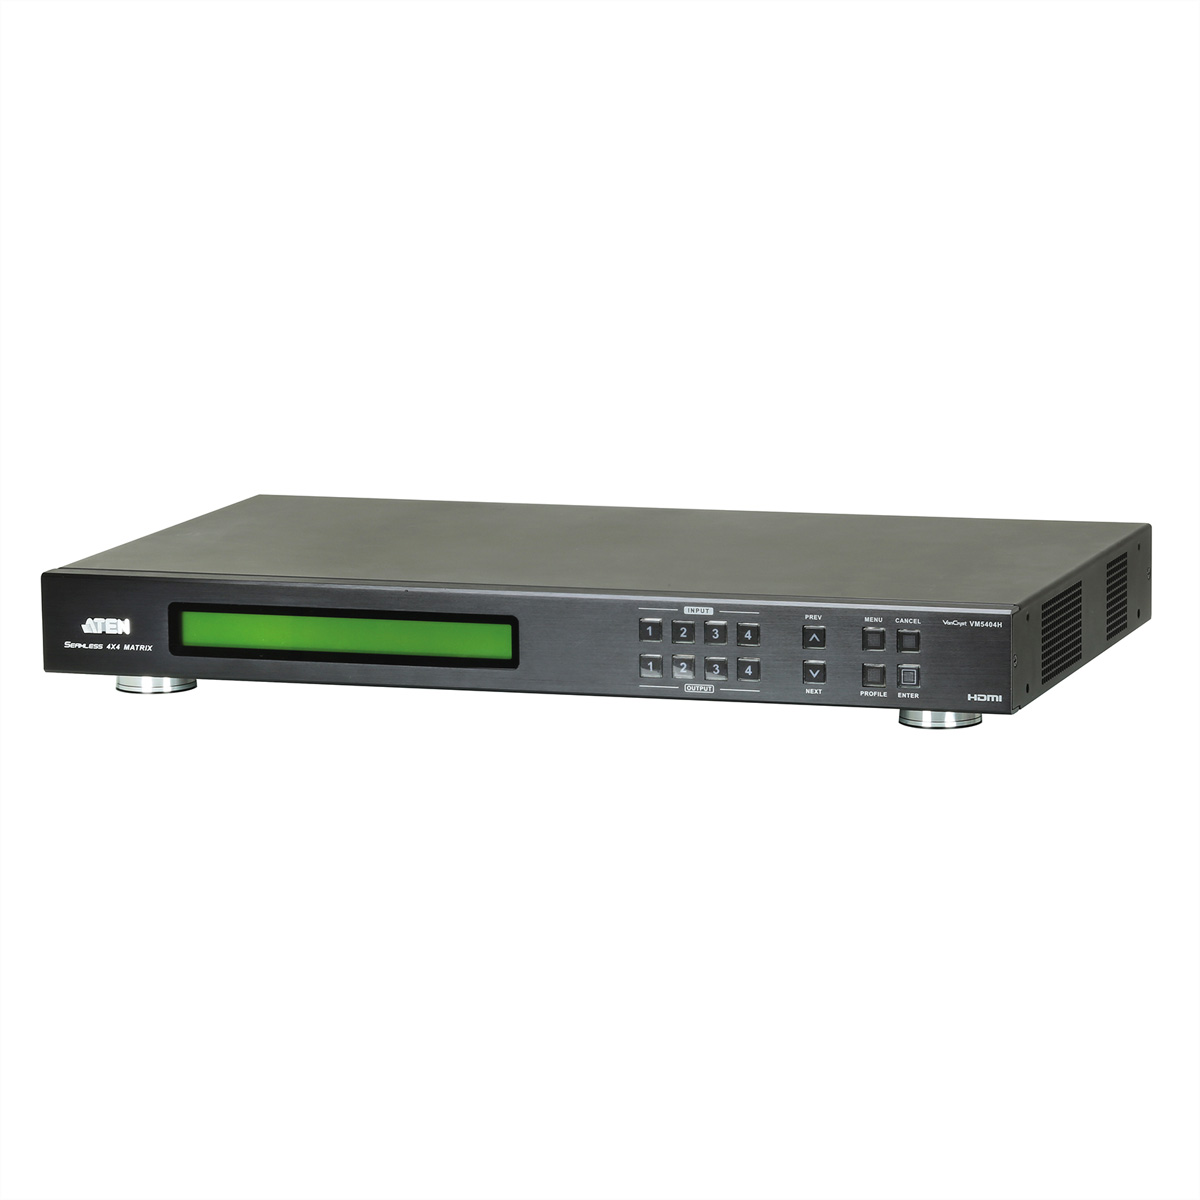 ATEN VM5404H 4x4-HDMI-Matrix-Switch mit Skalierfunktion